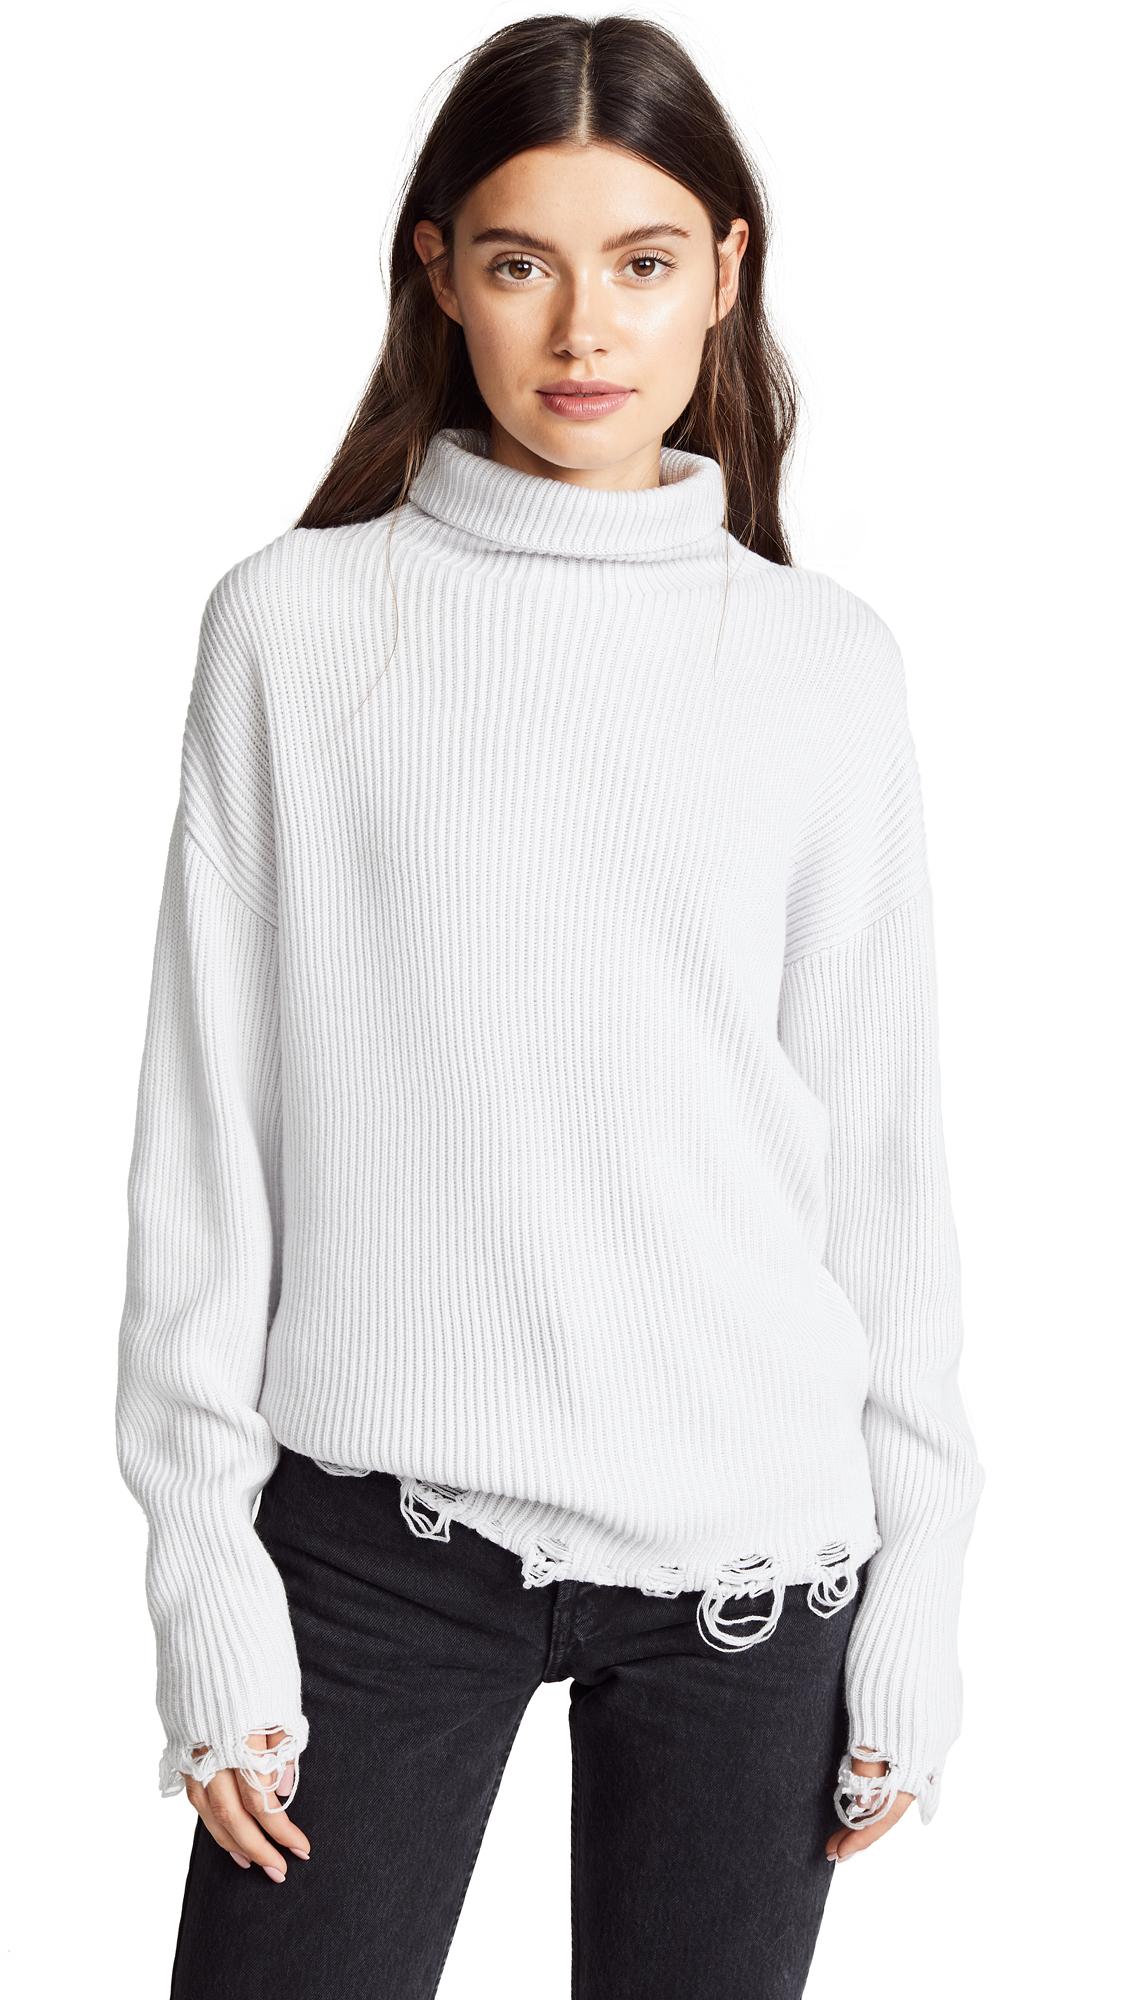 IRO.JEANS Iro. Jeans Wep Turtleneck Sweater in Cloudy White